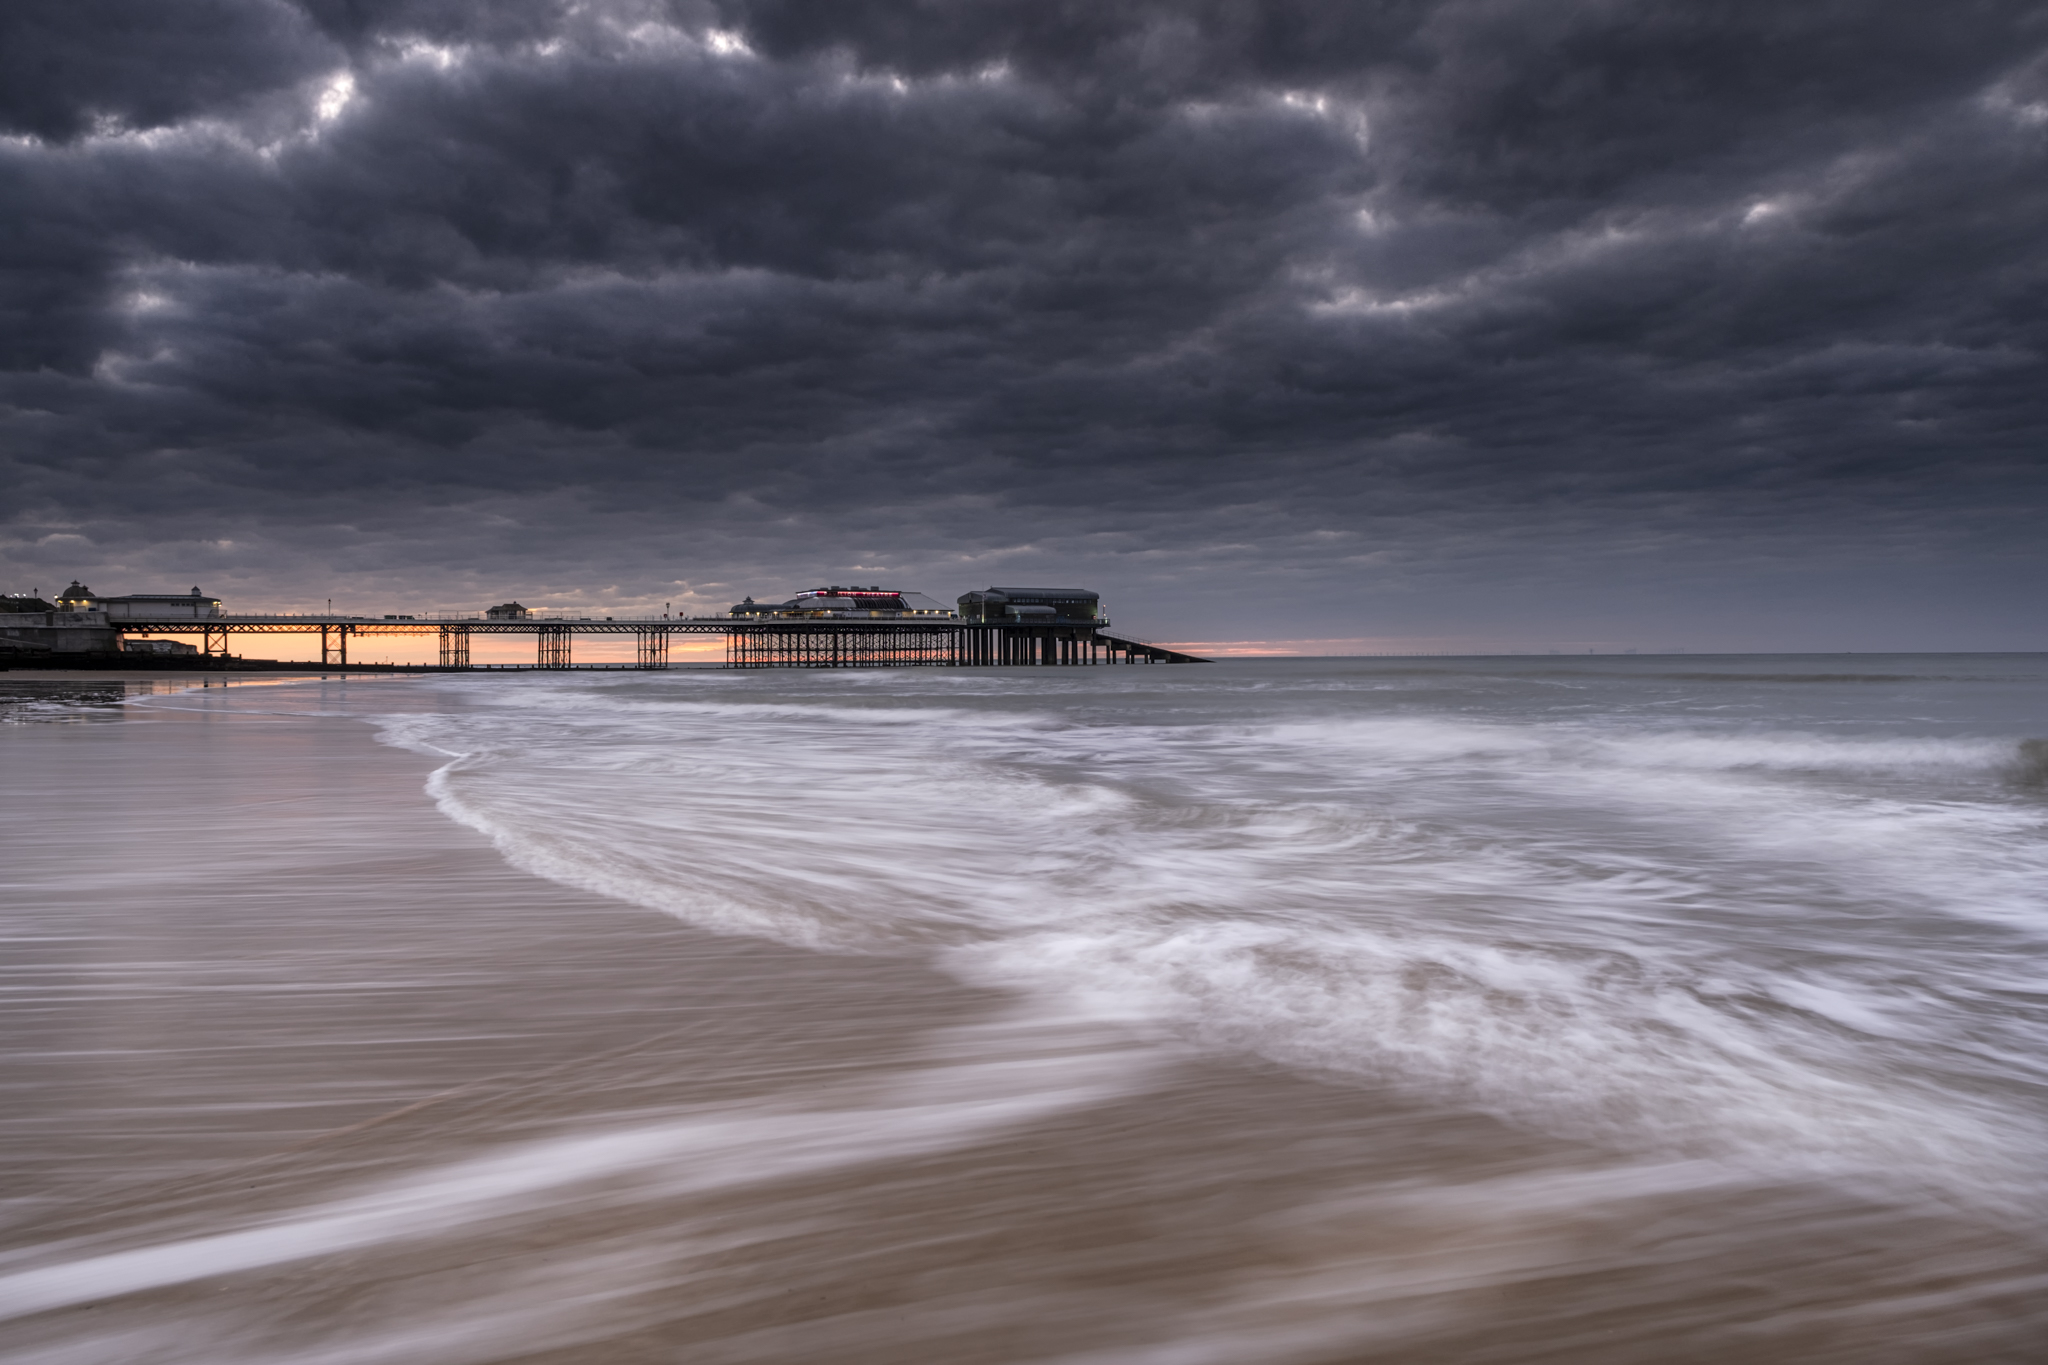 cromer pier on the Norfolk coast with the waves crashing on the beach